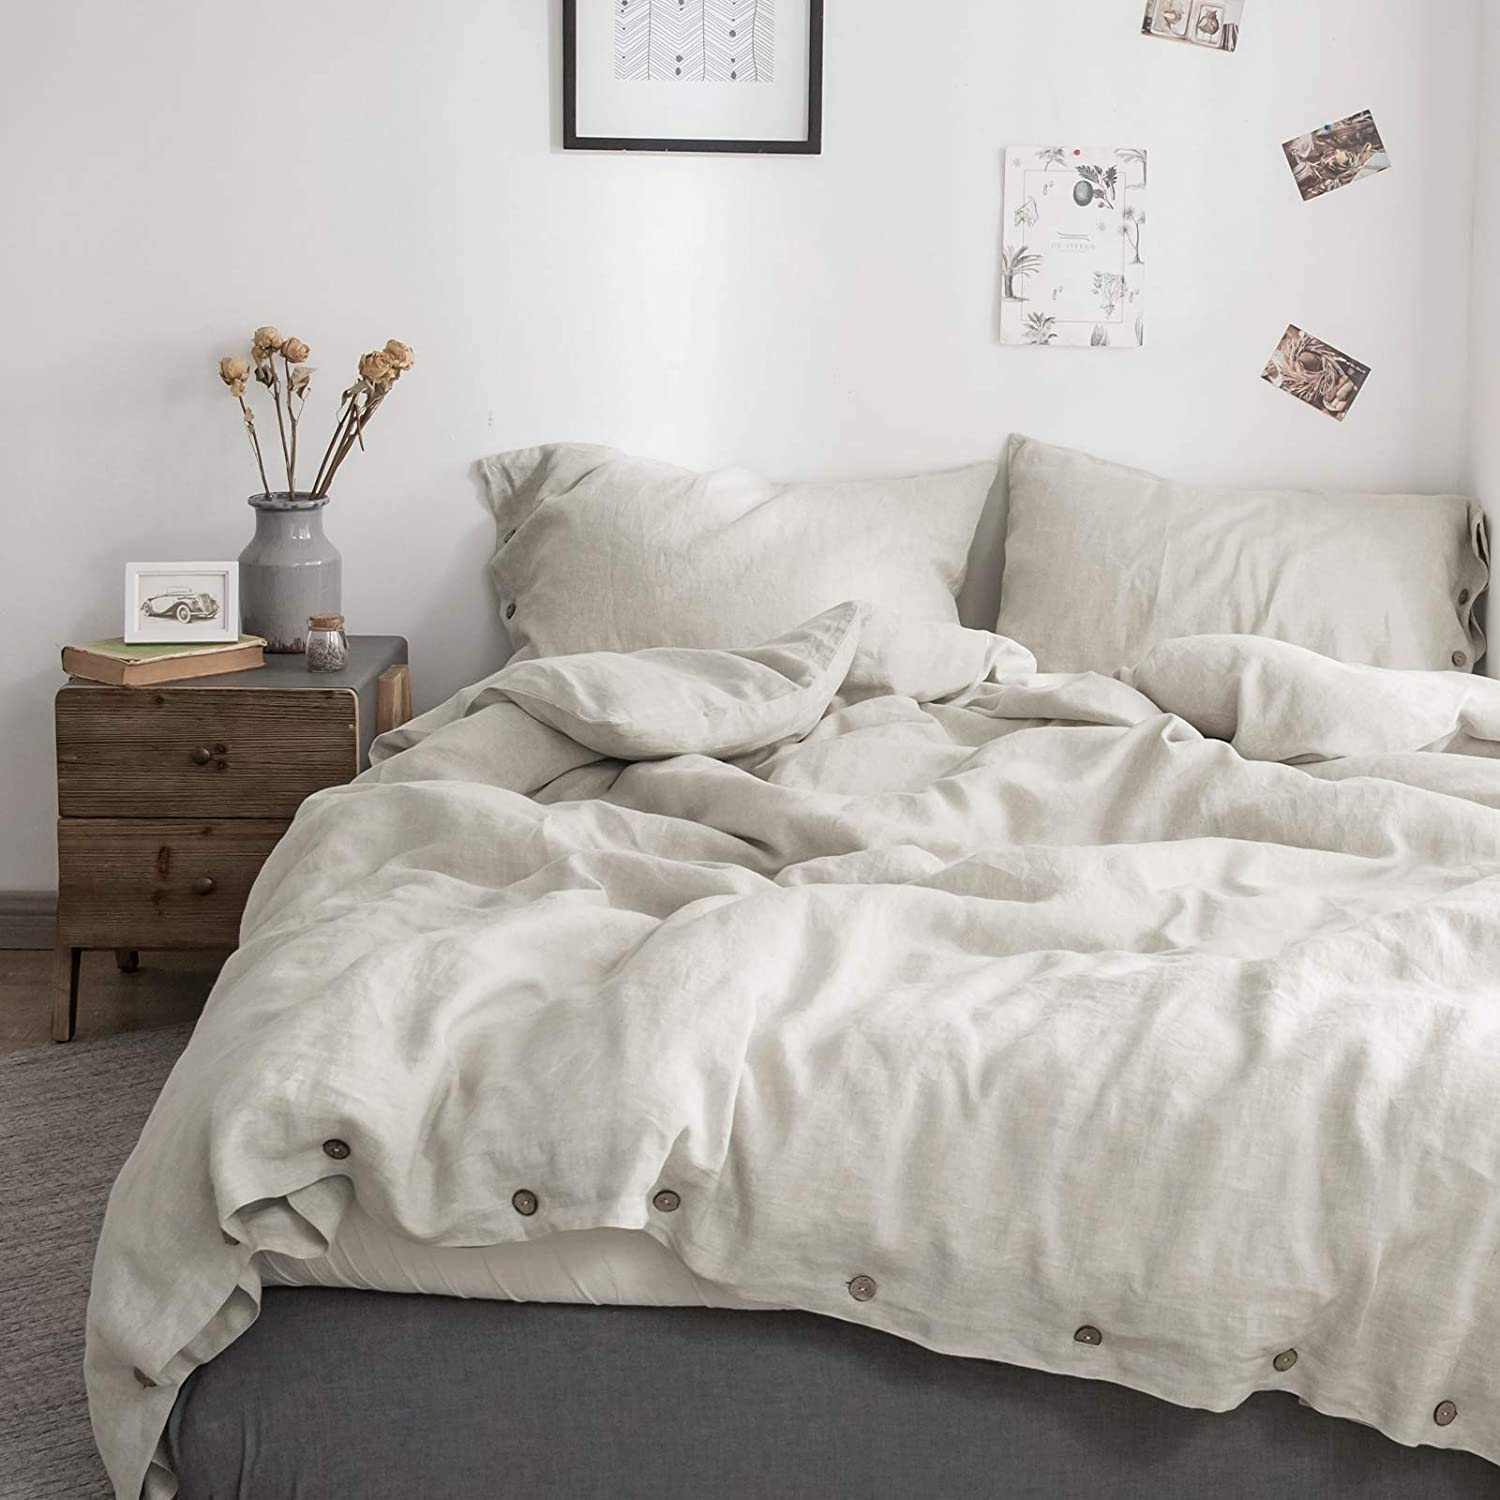 SimpleOpulence 100% Linen Duvet Cover Coconut Luxury goods Set Max 68% OFF with Button C